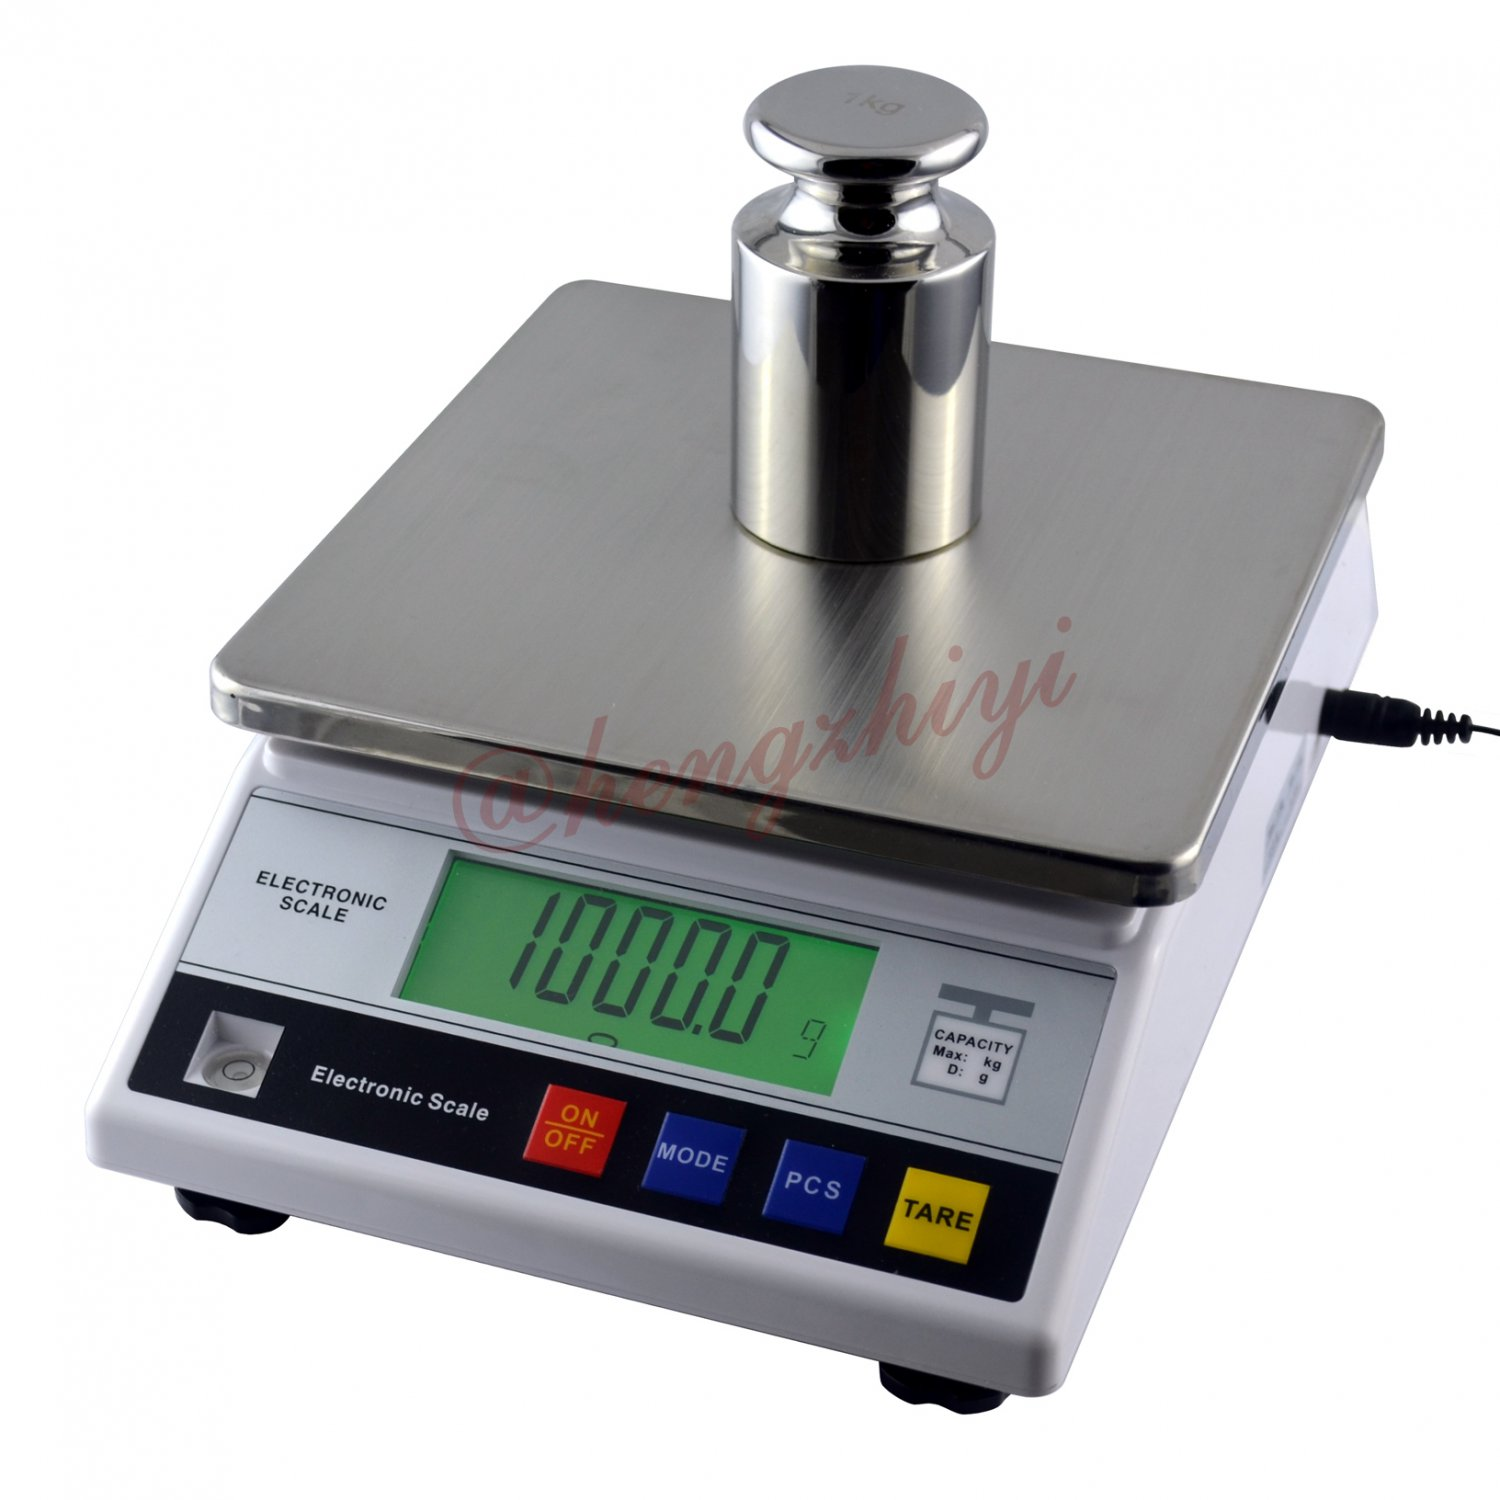 Weight Scales Big W 7 5kg X 1g Durable Electronic Precision Laboratory Scale